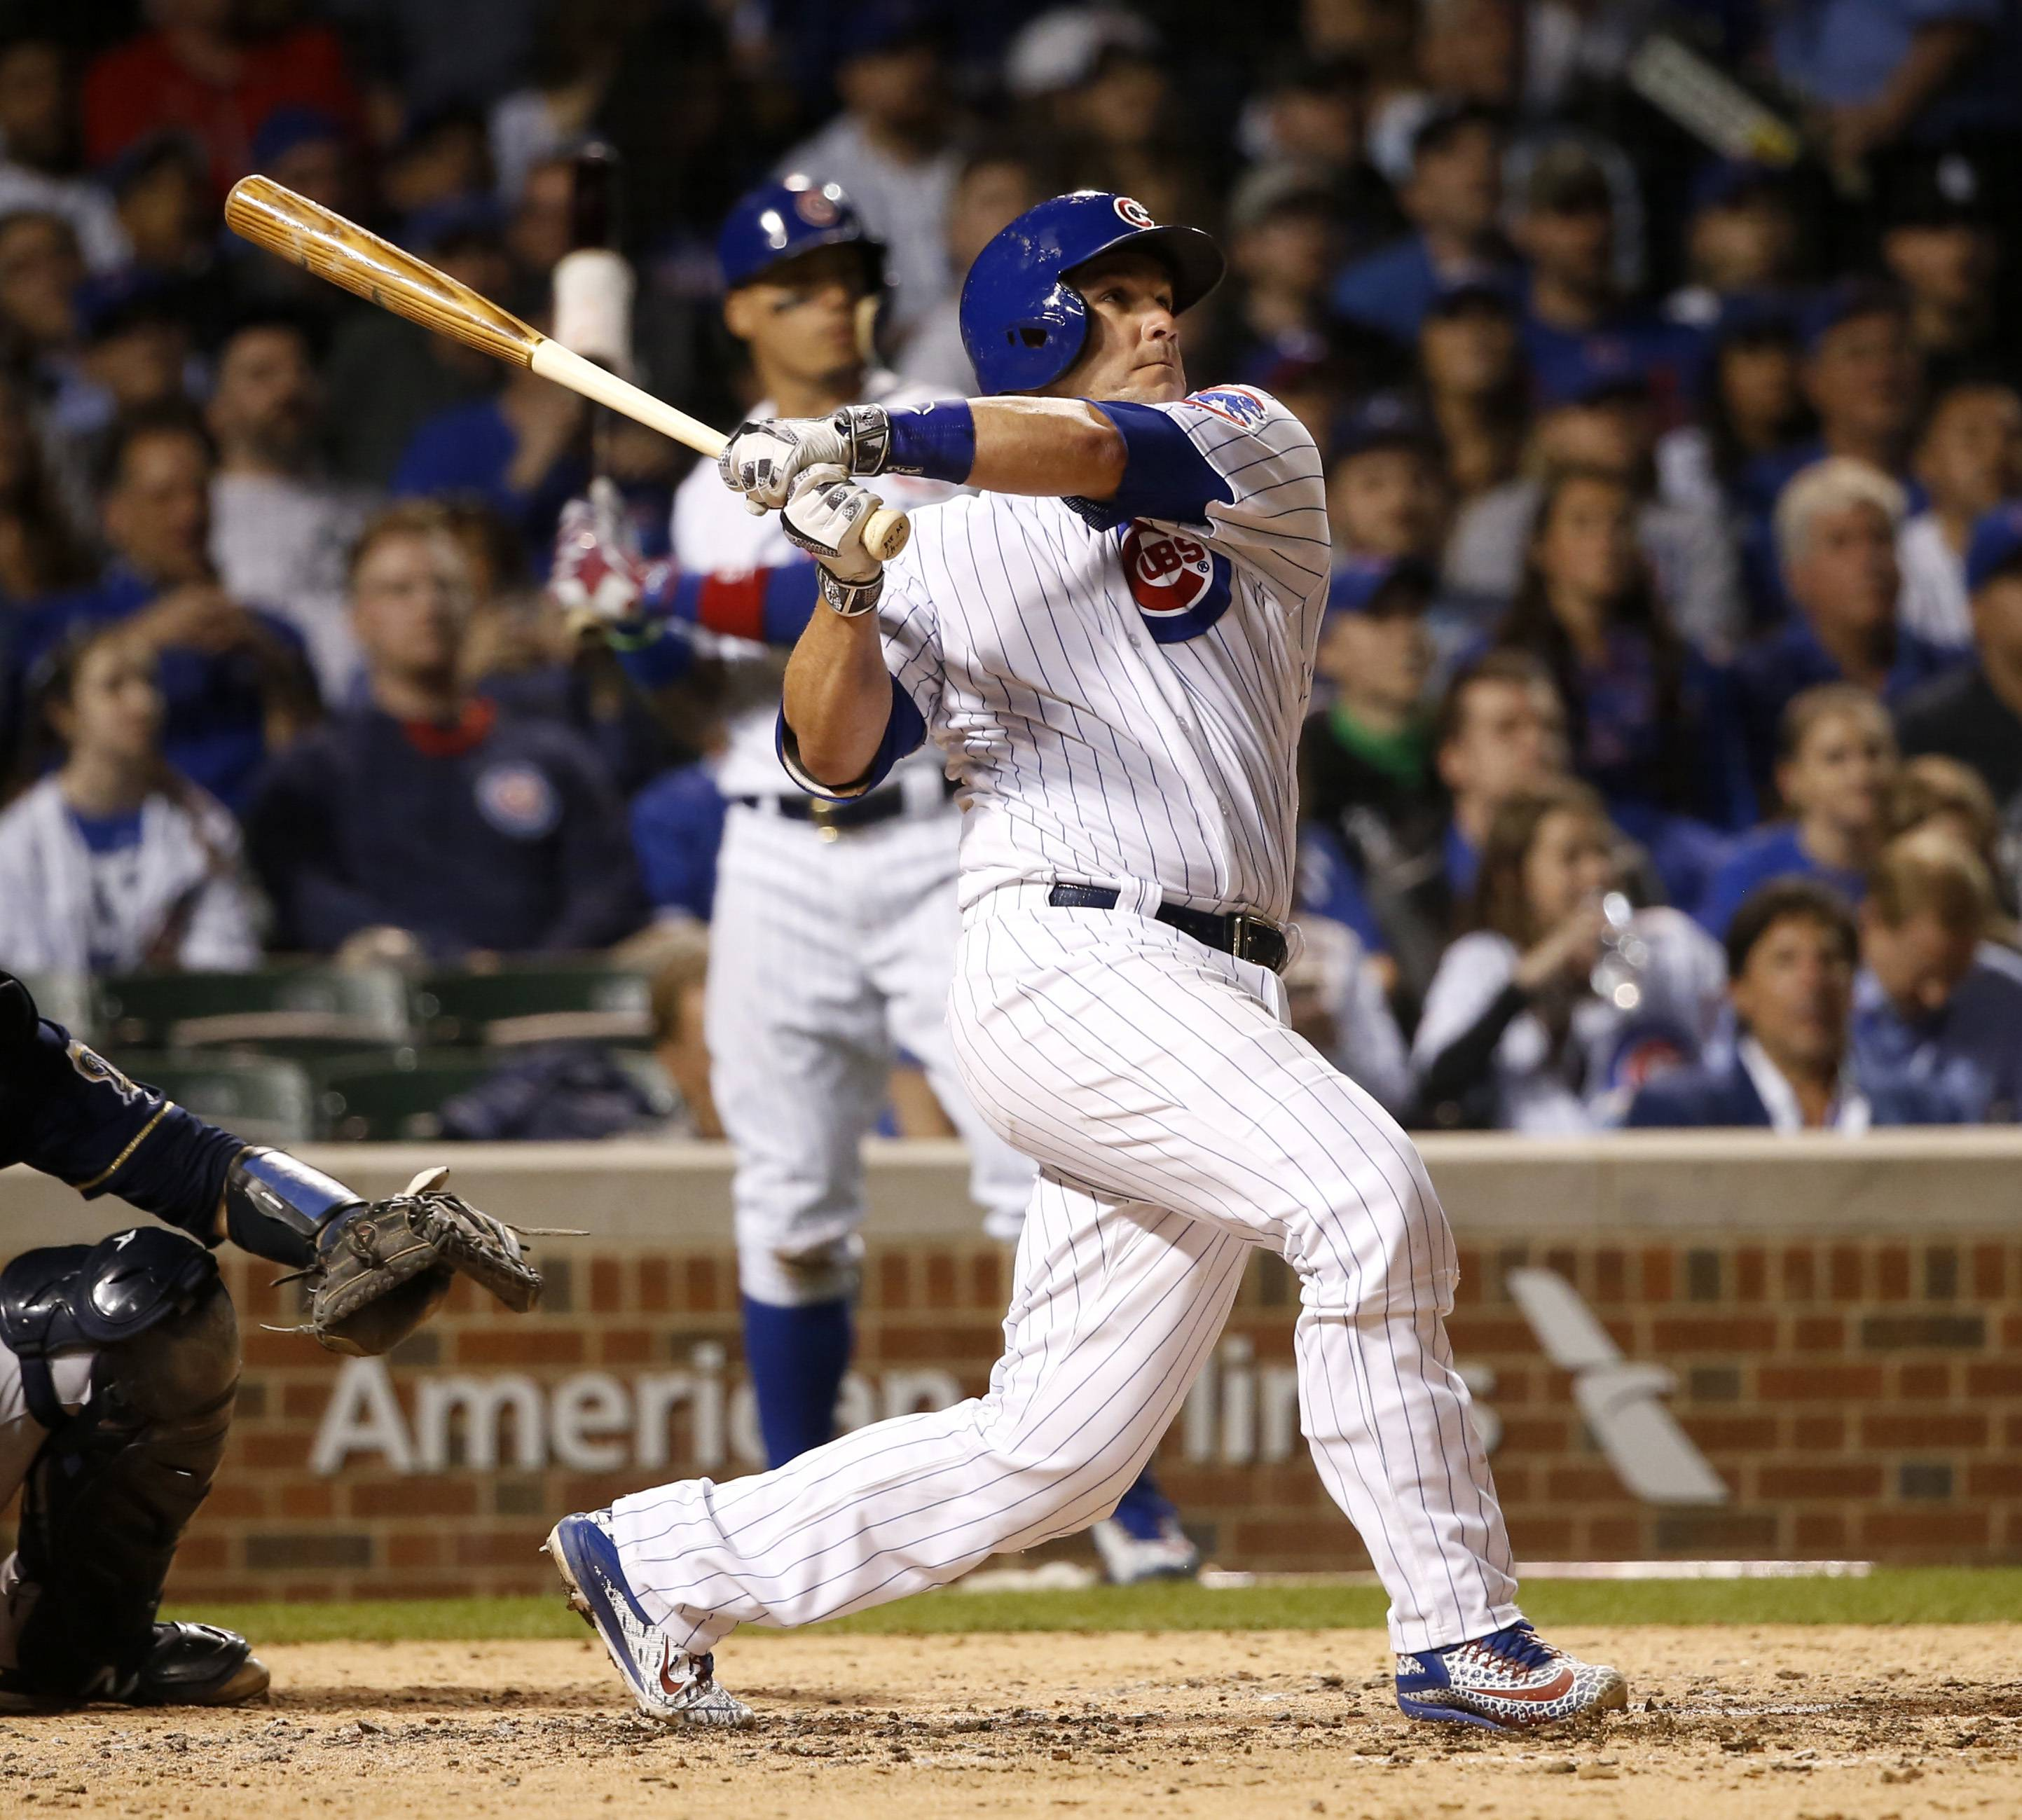 Cubs back to .500 with win over Brewers